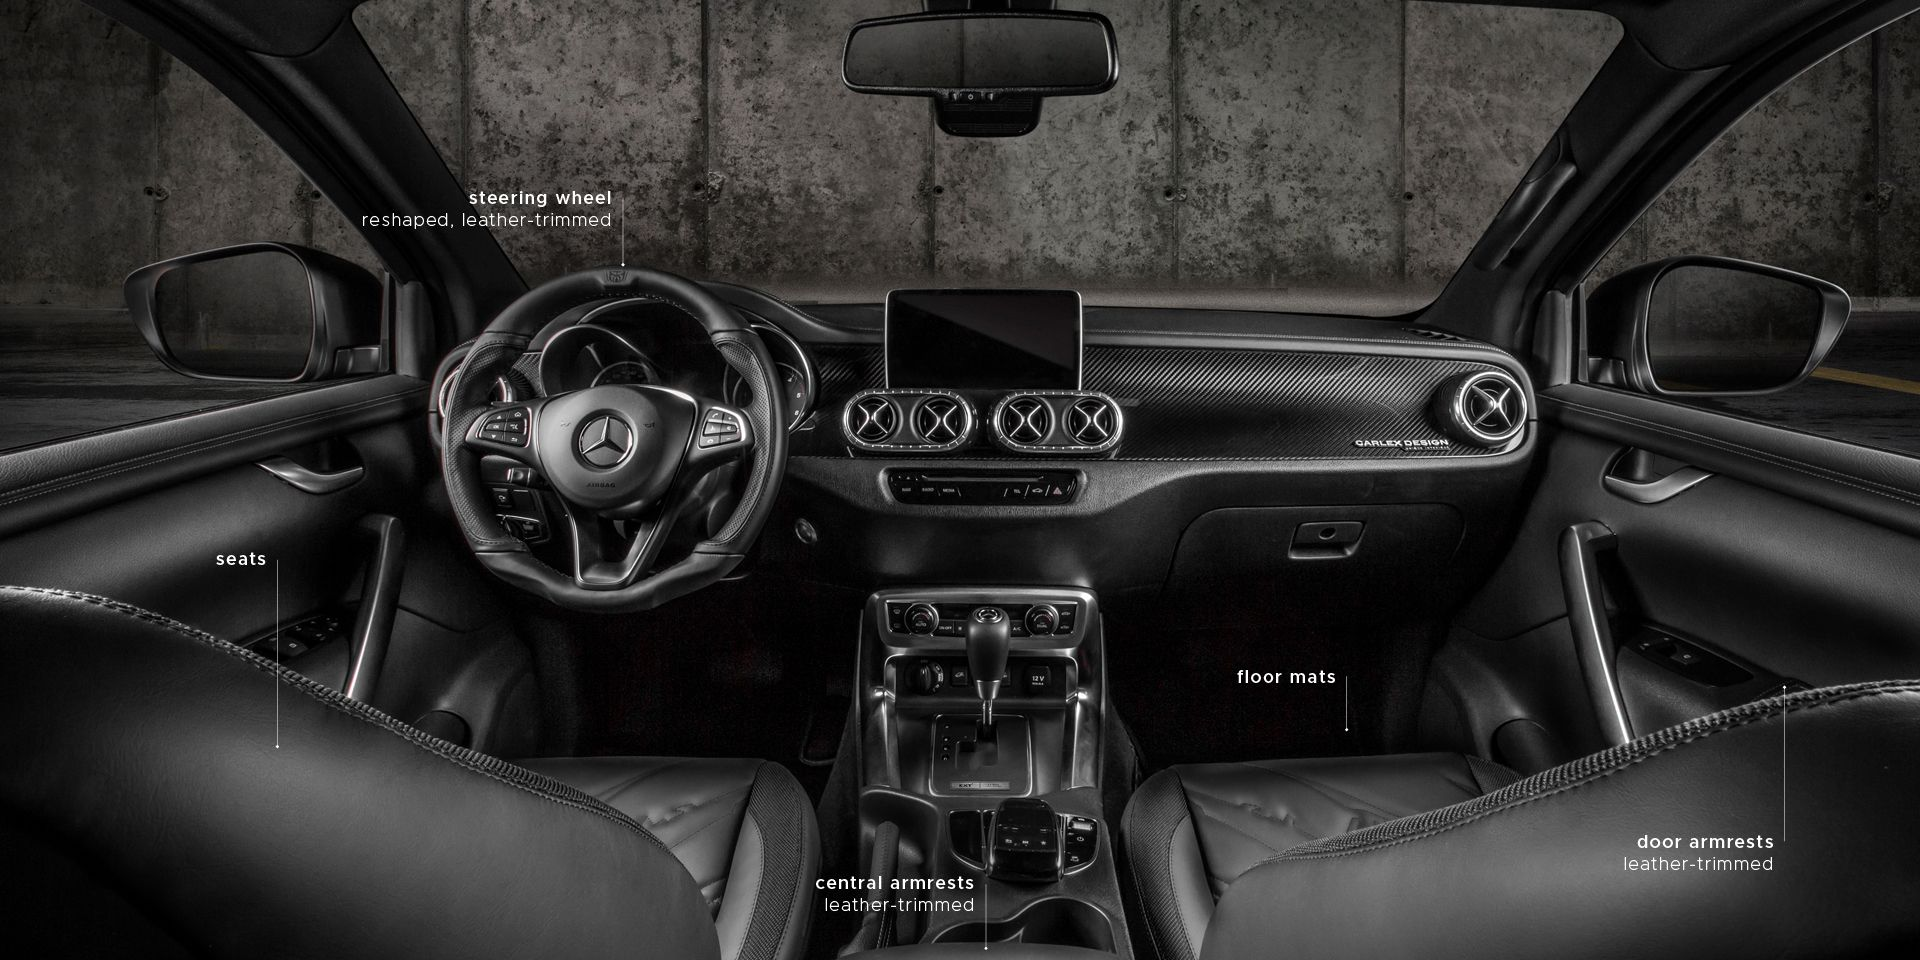 MERCEDES-BENZ_XCLASS_EXY_OFF-ROAD_INTERIOR_03_EN.jpg